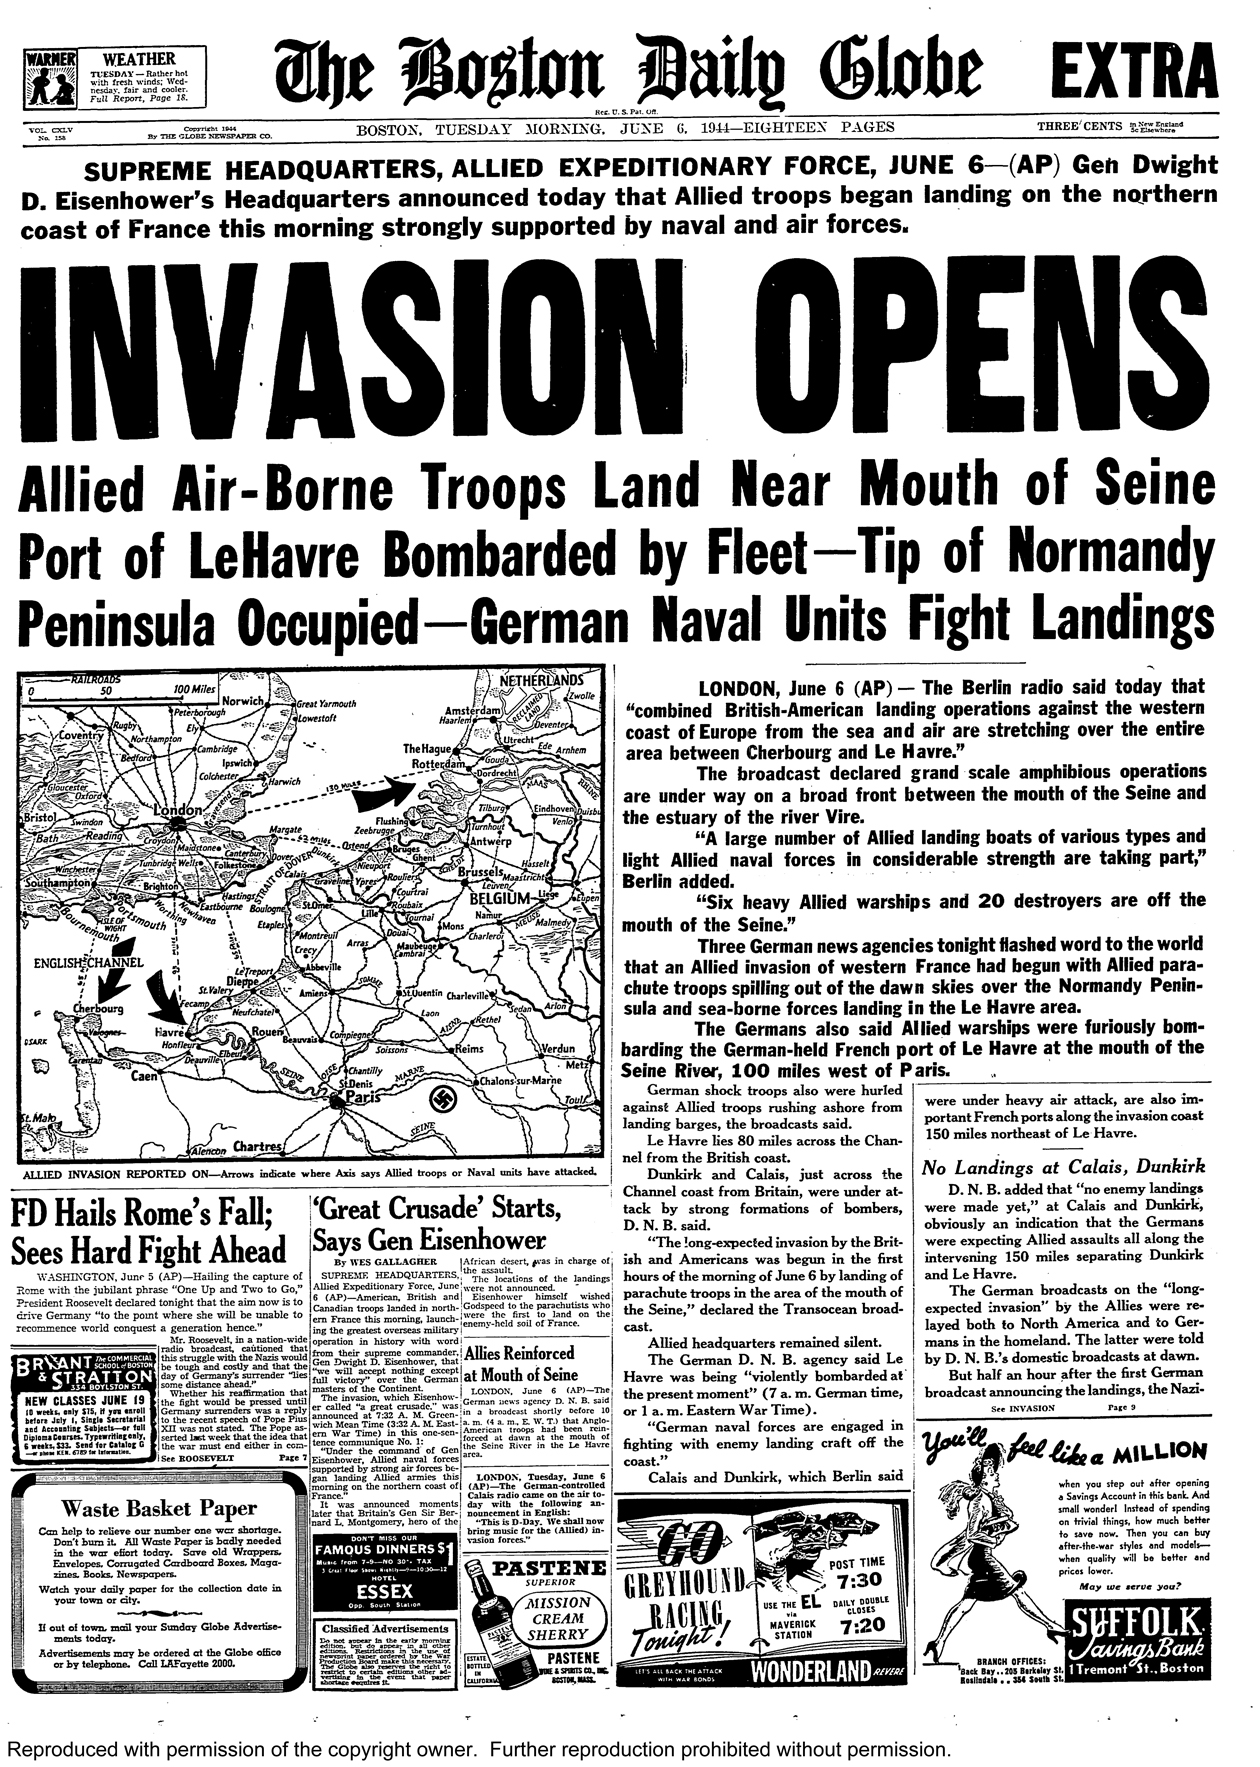 the details of the events of the d day in the history of wwii World war ii would mark a period in history that would pit millions of individuals fighting against one another during 1939-1945 during this time, germany captured france forcing the allies.